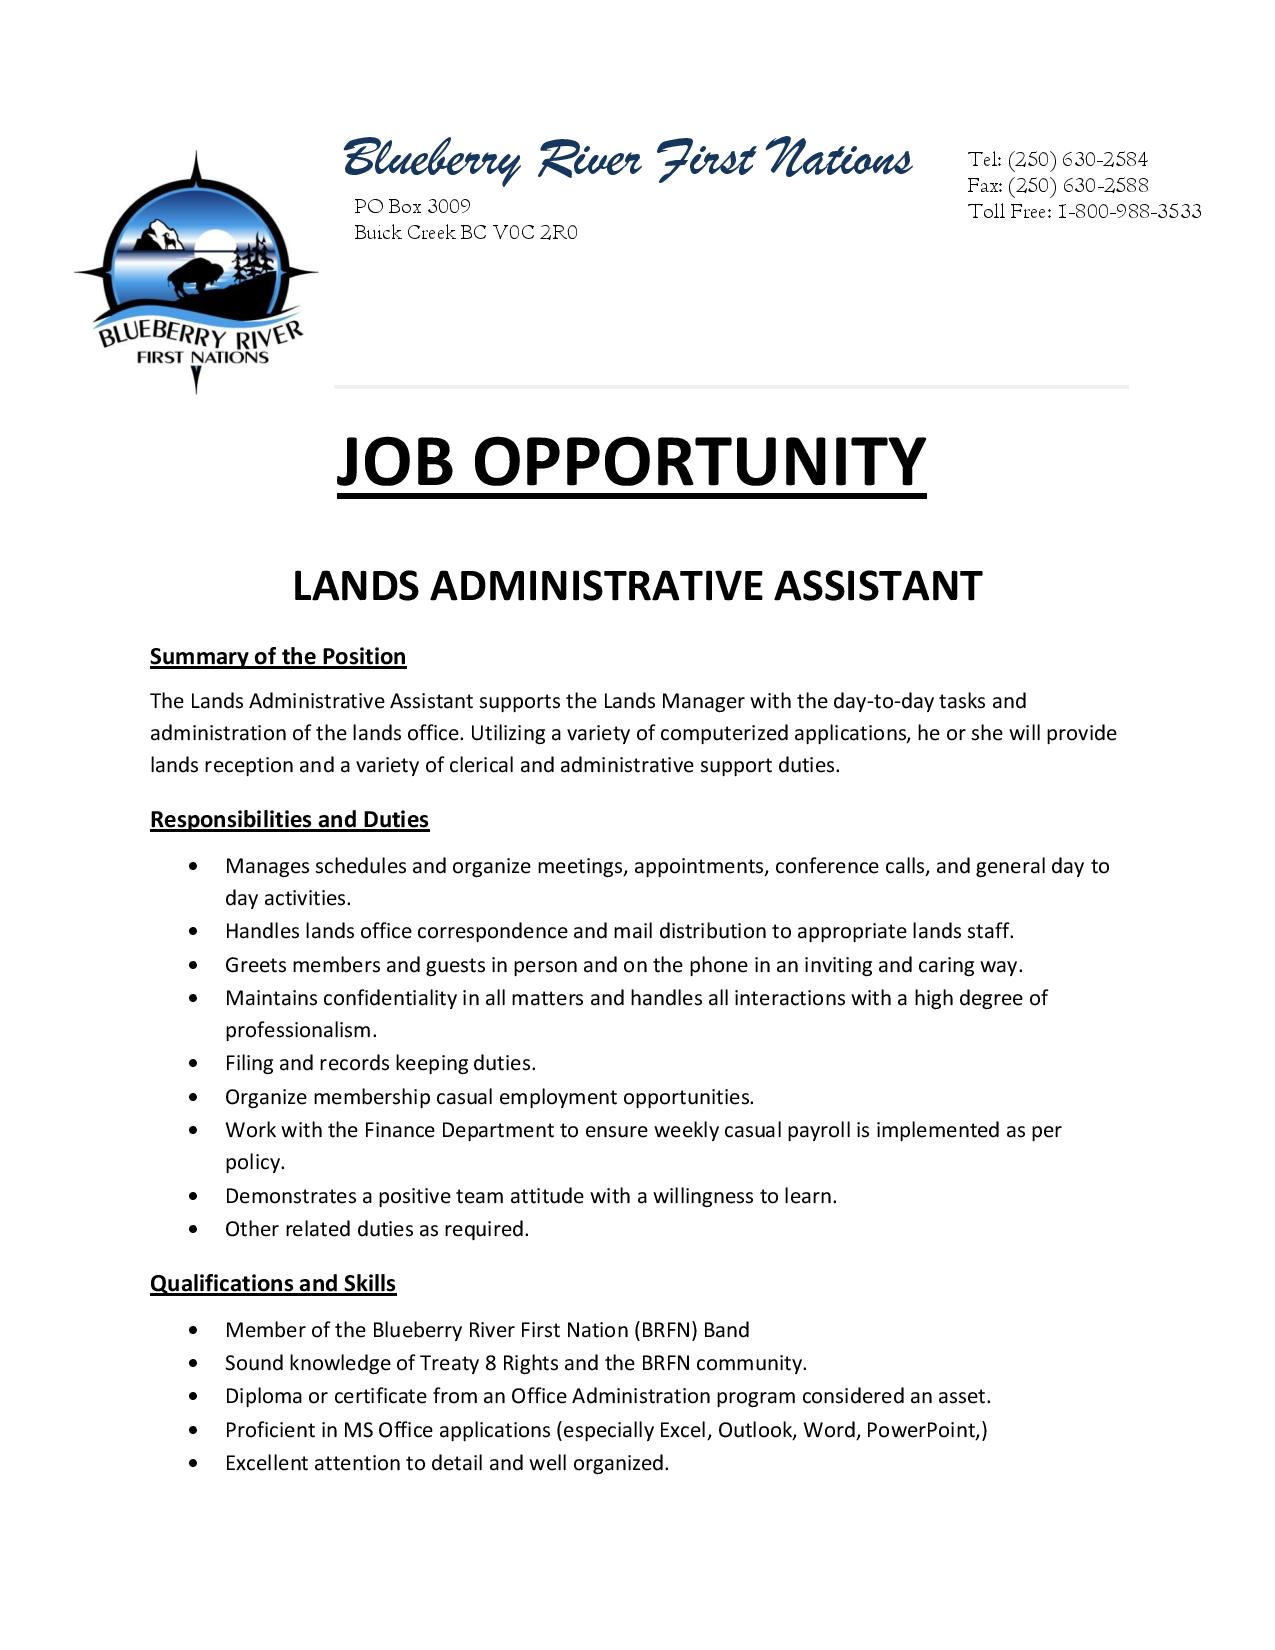 Lands administ page-001